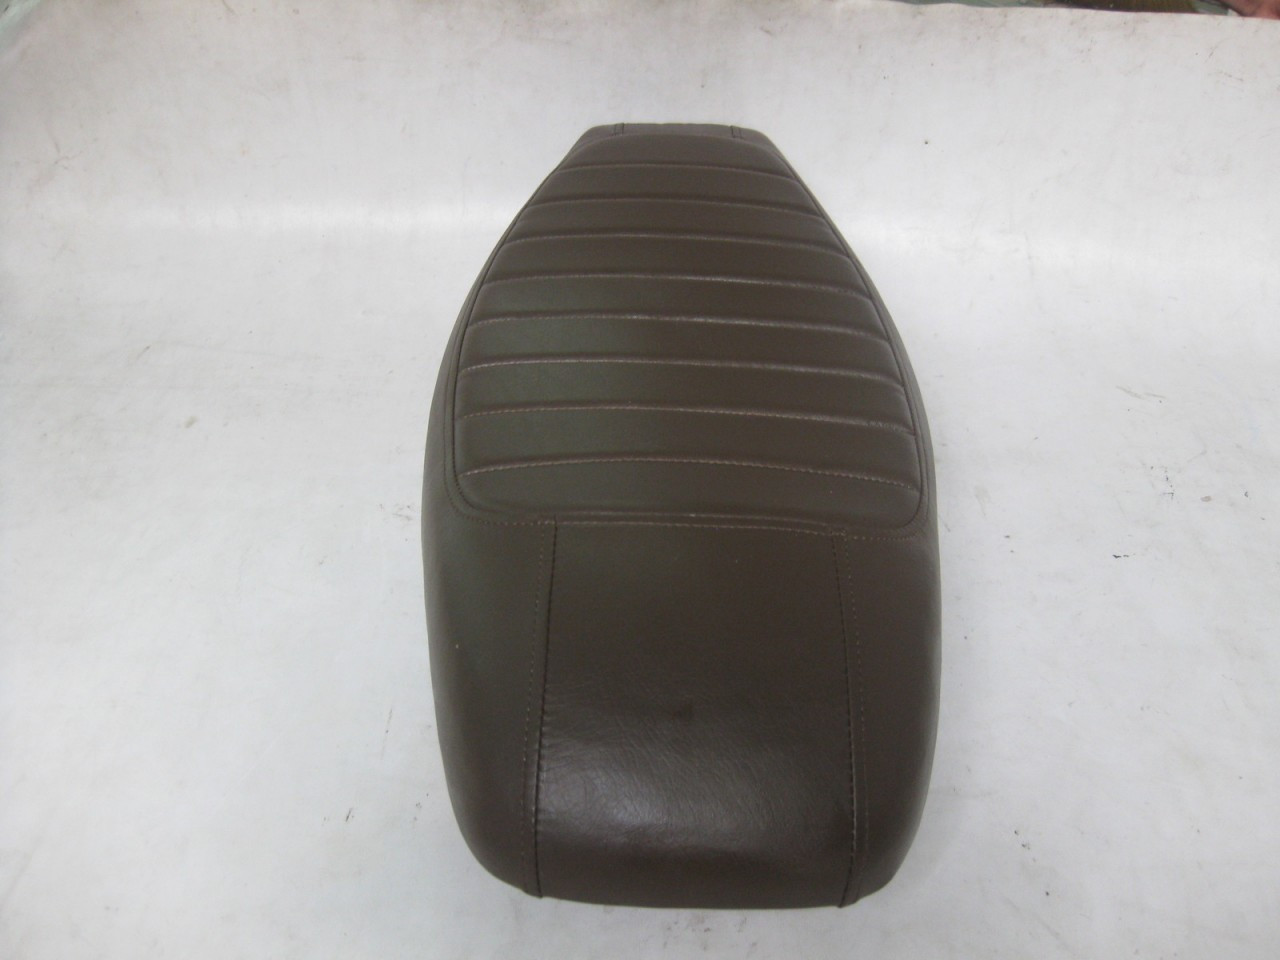 1979 - 1982 Honda CX500 Custom cafe racer complete seat with metal seat pan #4074